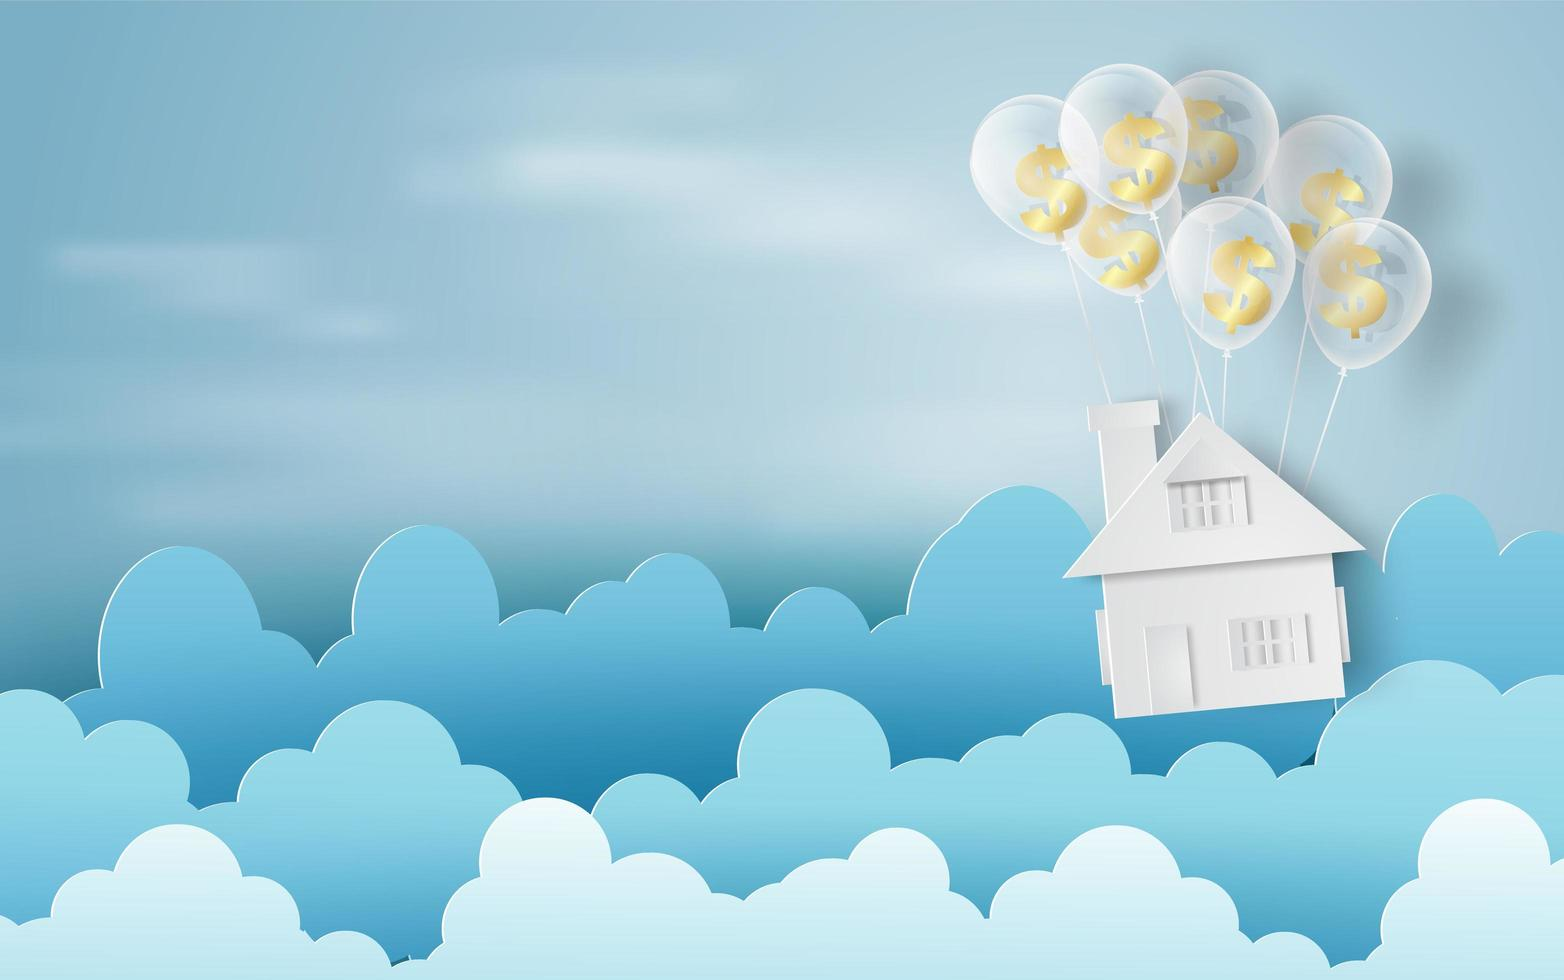 Paper art of balloons as clouds on blue sky banner with house vector